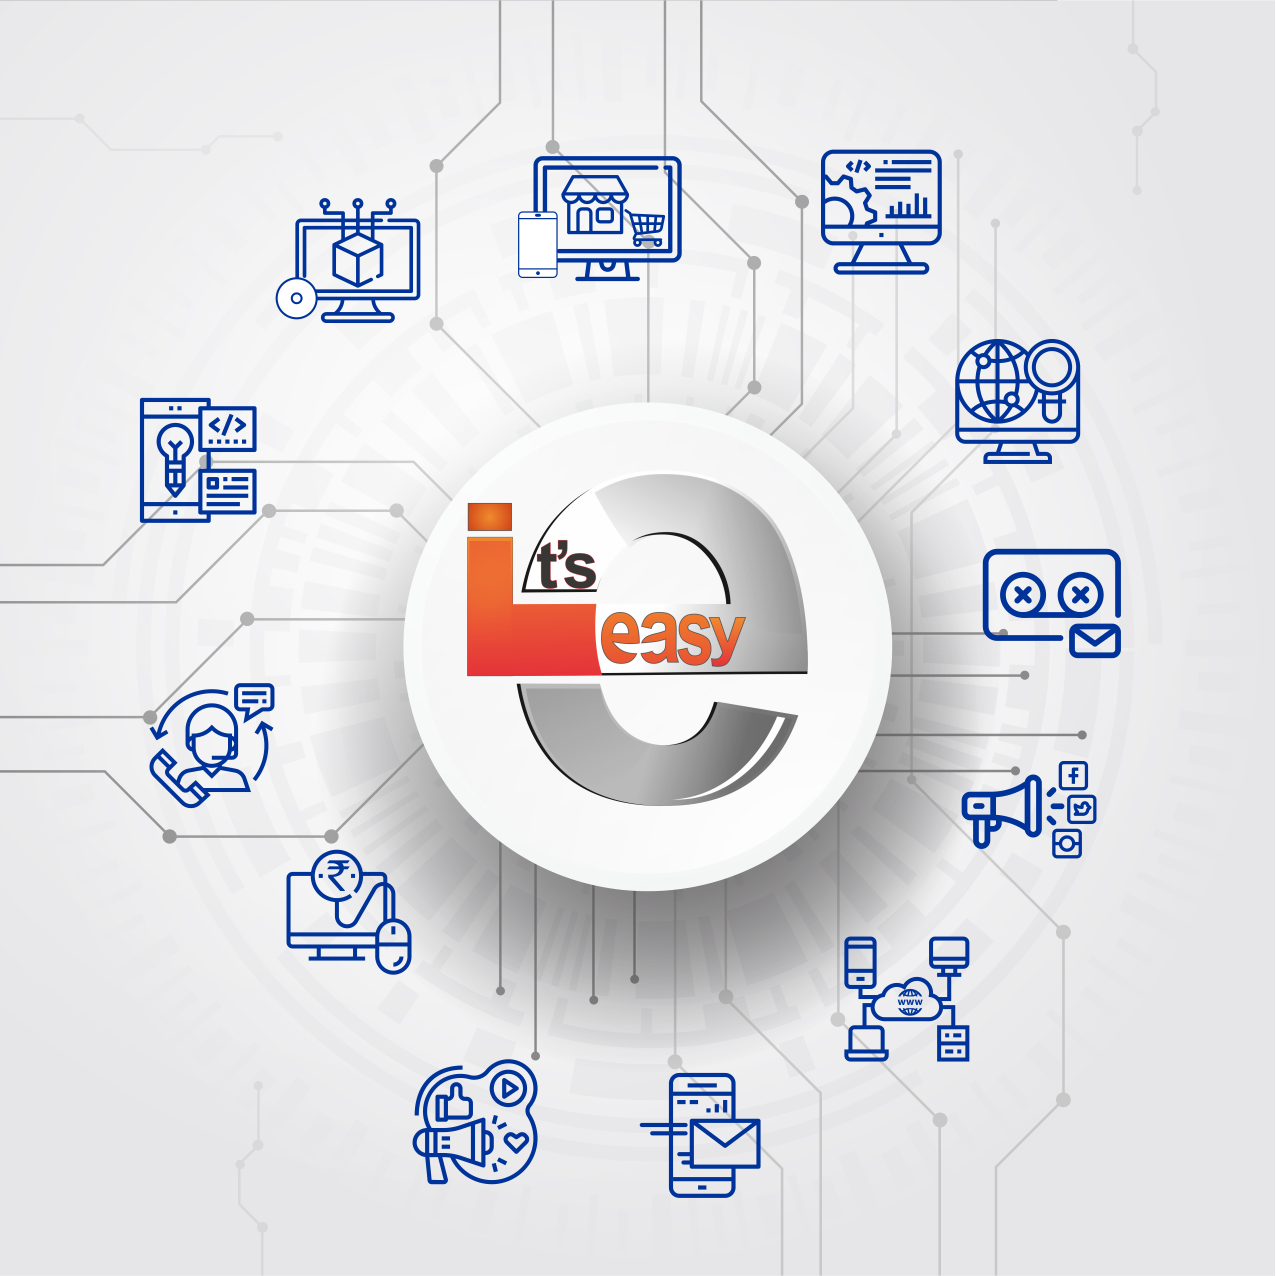 ItsEasy services